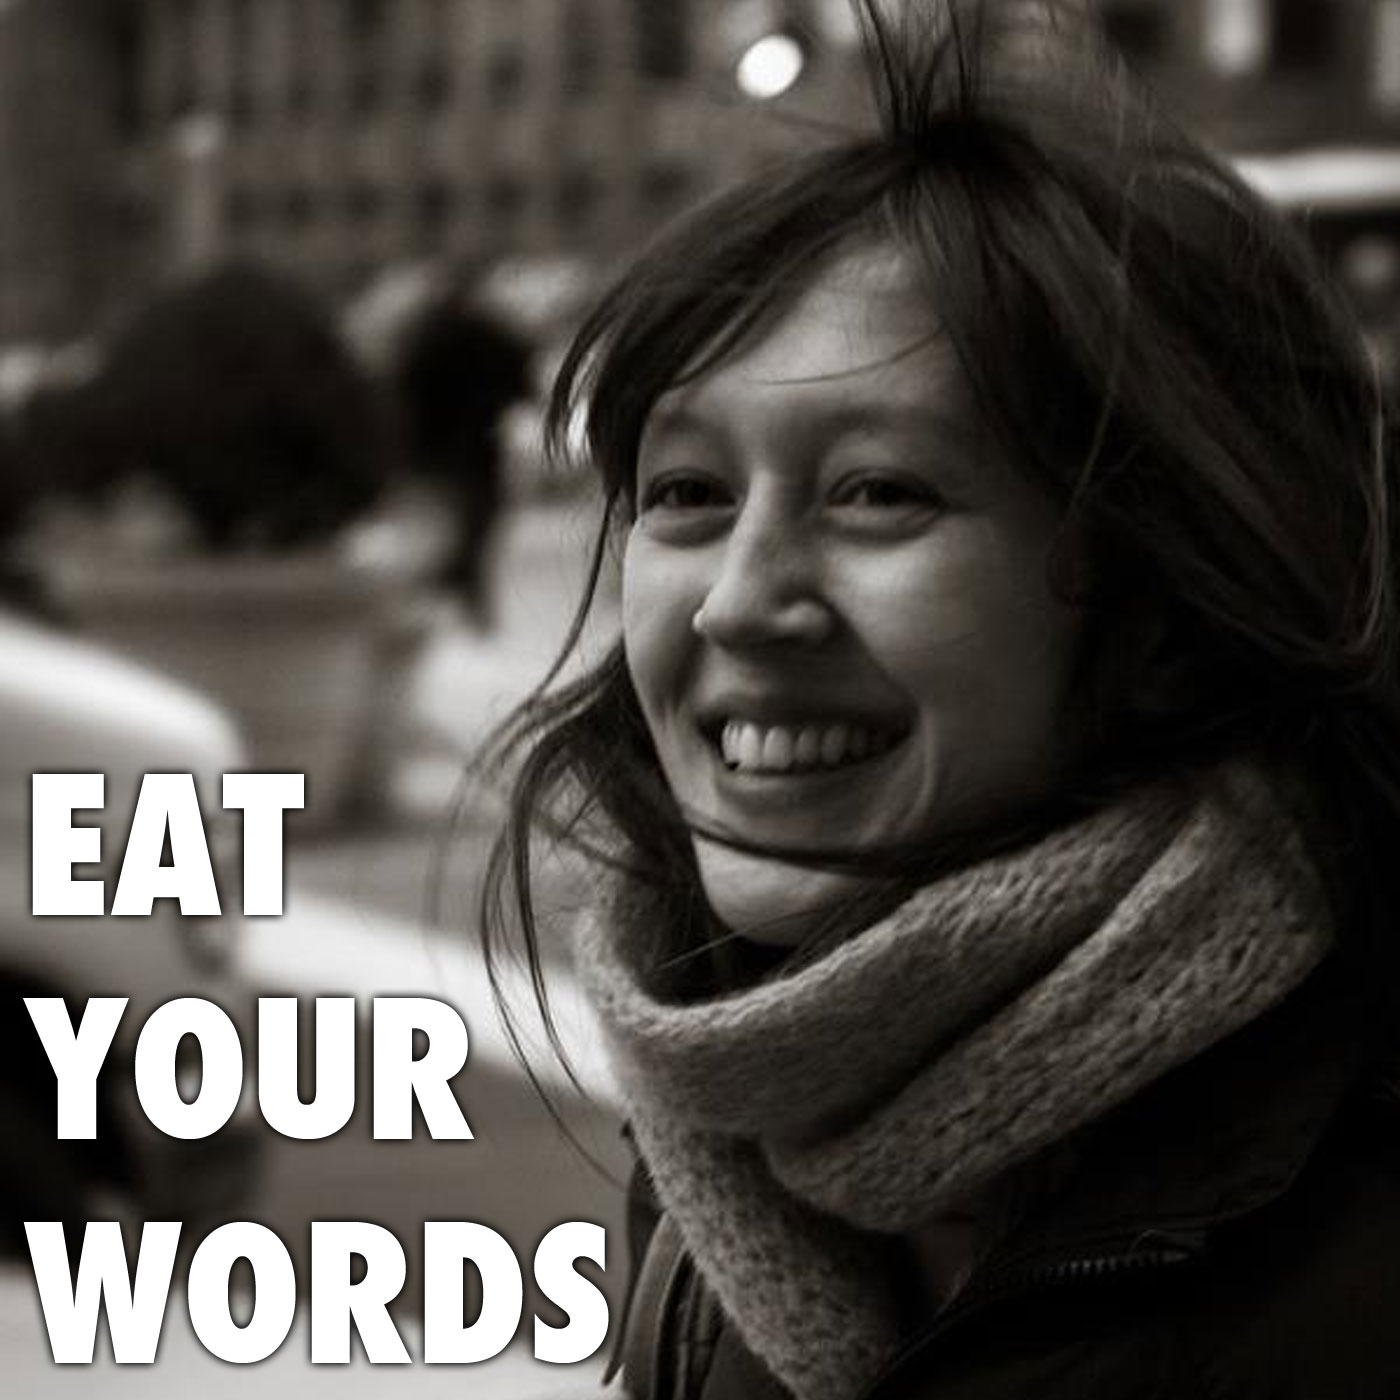 Eat-your-words